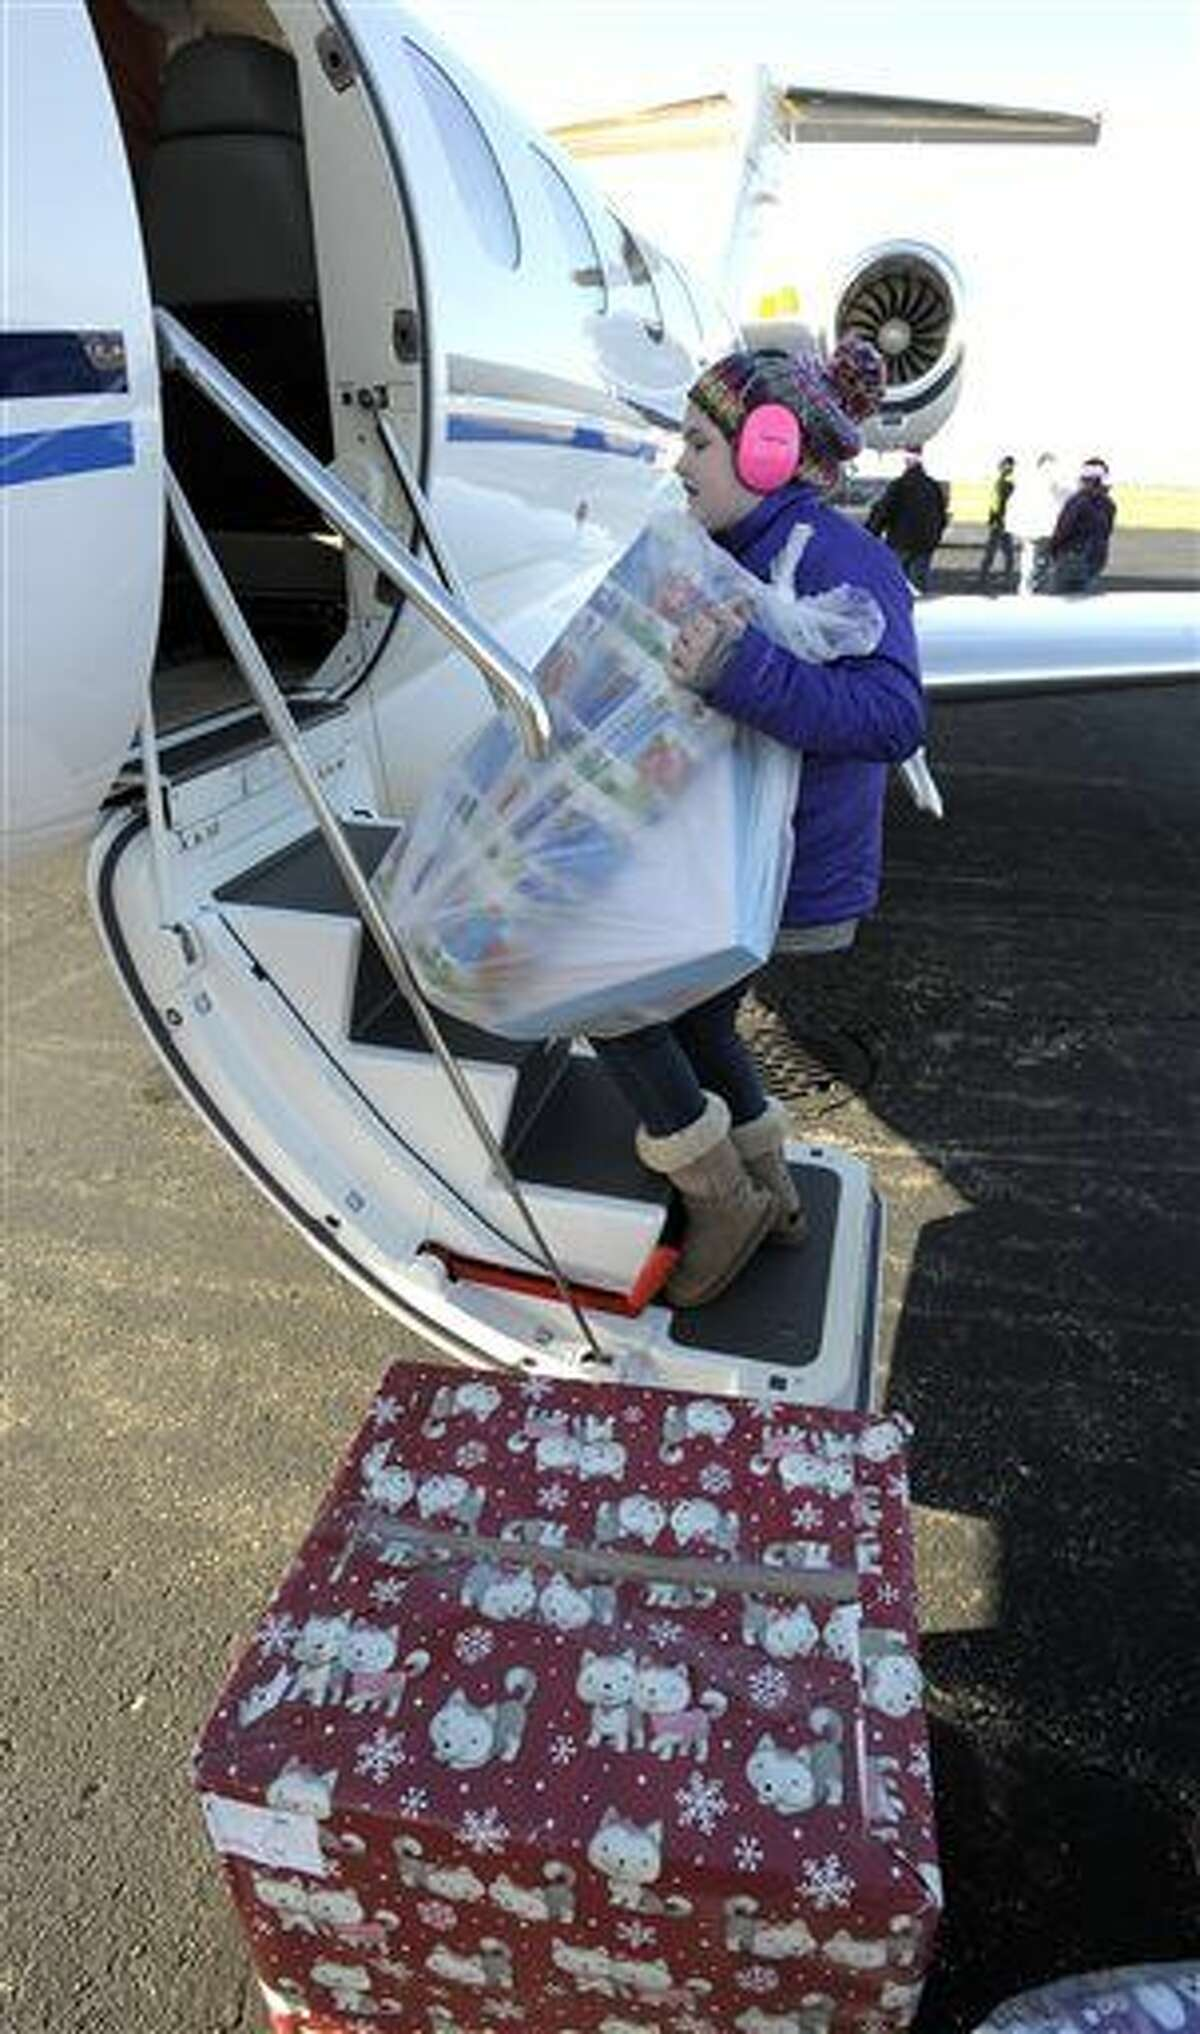 Kirsten Reid, 10, of Clarkston, helps load gifts into a jet as volunteers donate their time to deliver holiday gifts to thousands of children across Michigan during Operation Good Cheer at the Oakland County International Airport in Waterford Twp., Mich., Saturday, Dec. 5, 2015. (Todd McInturf/Detroit News via AP)